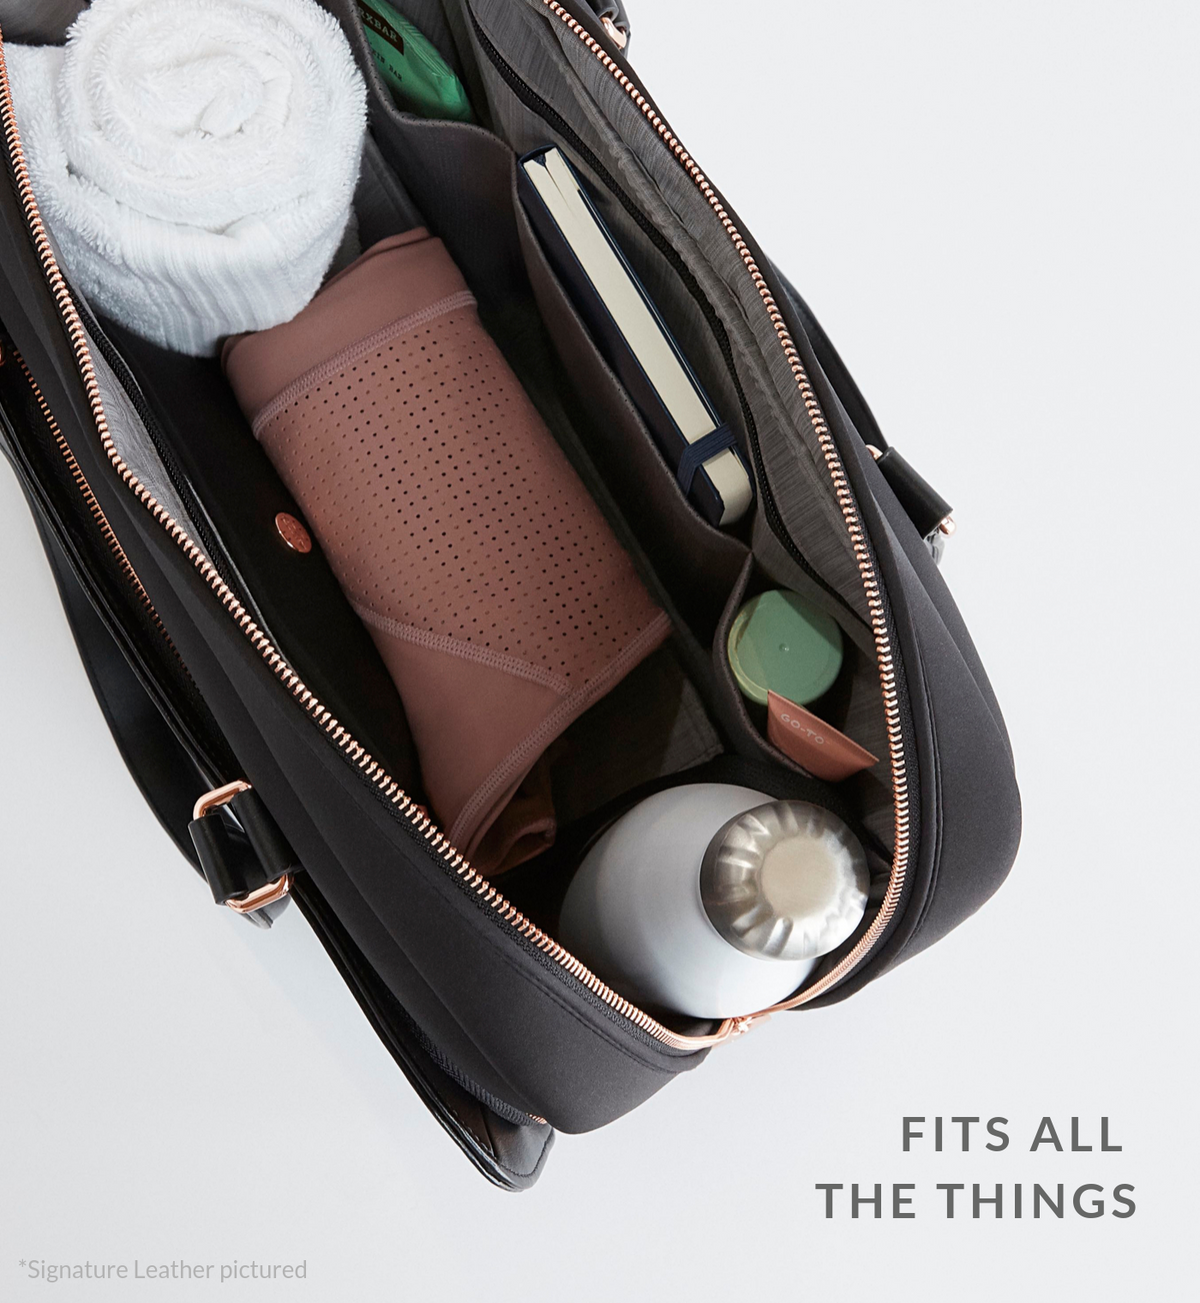 Luxe black work and gym carry-all open and filled with daily #LifeInBag essentials